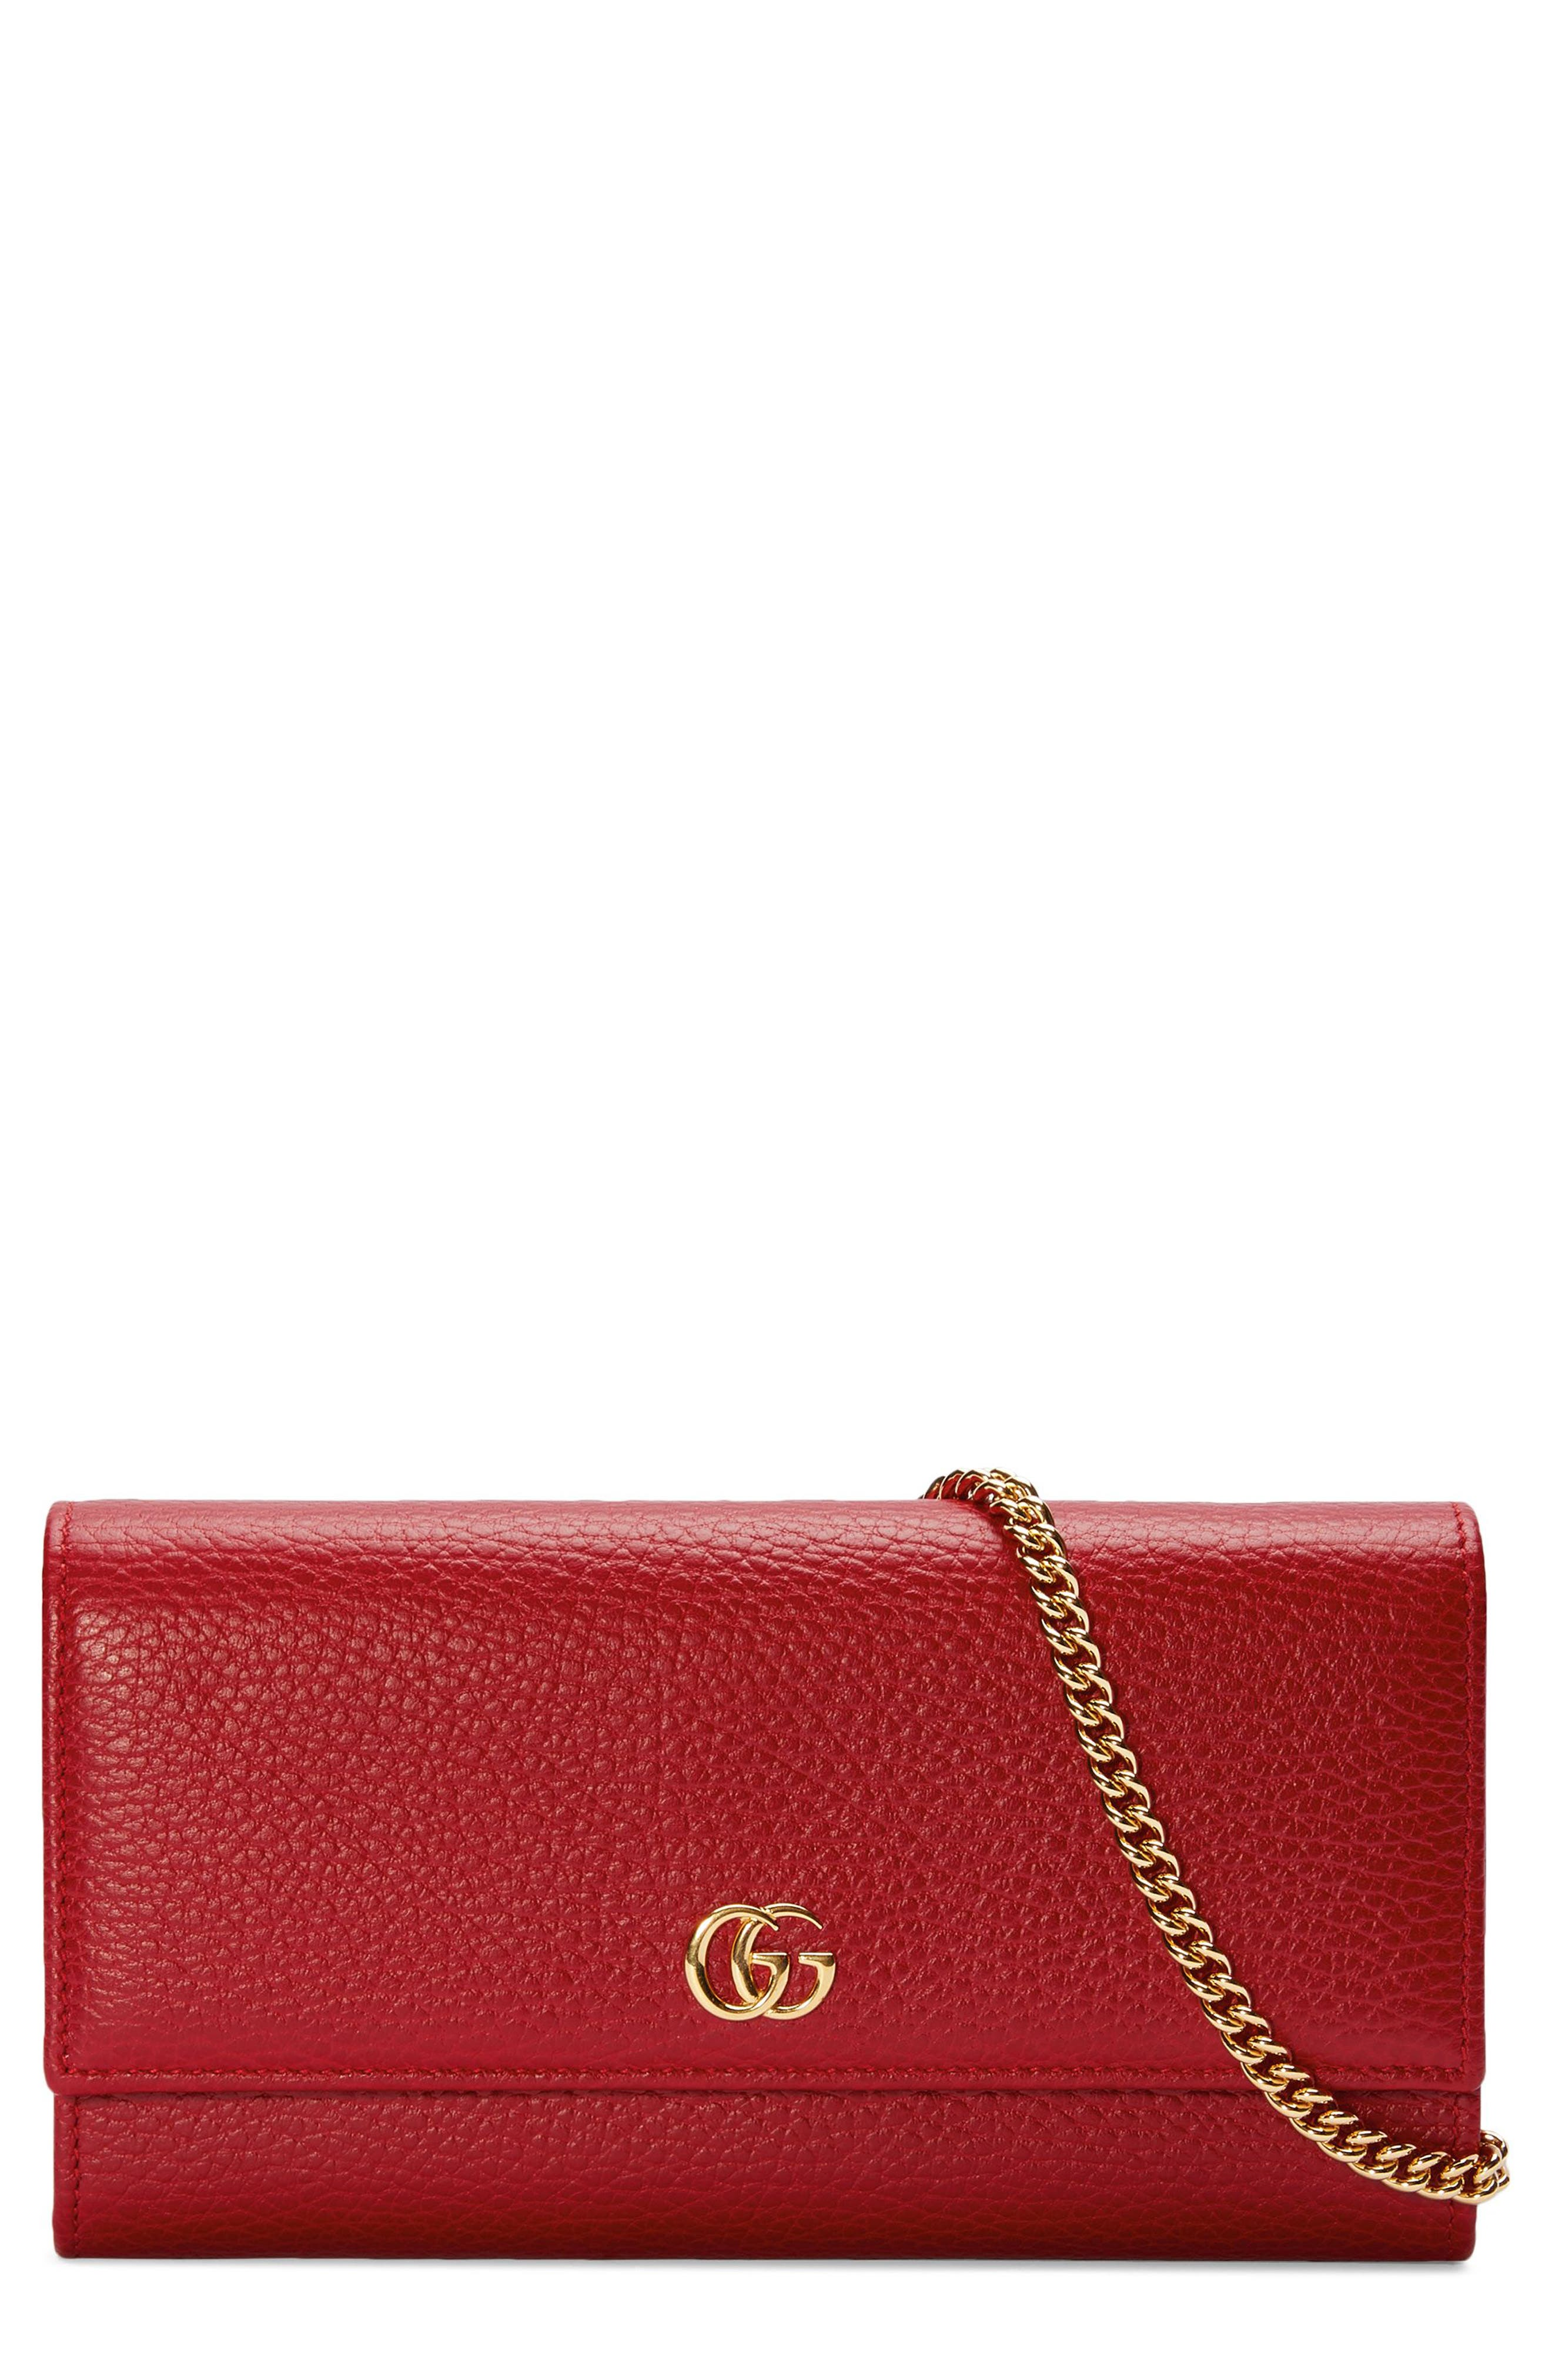 Petite Marmont Leather Continental Wallet on a Chain,                             Main thumbnail 1, color,                             HIBISCUS RED